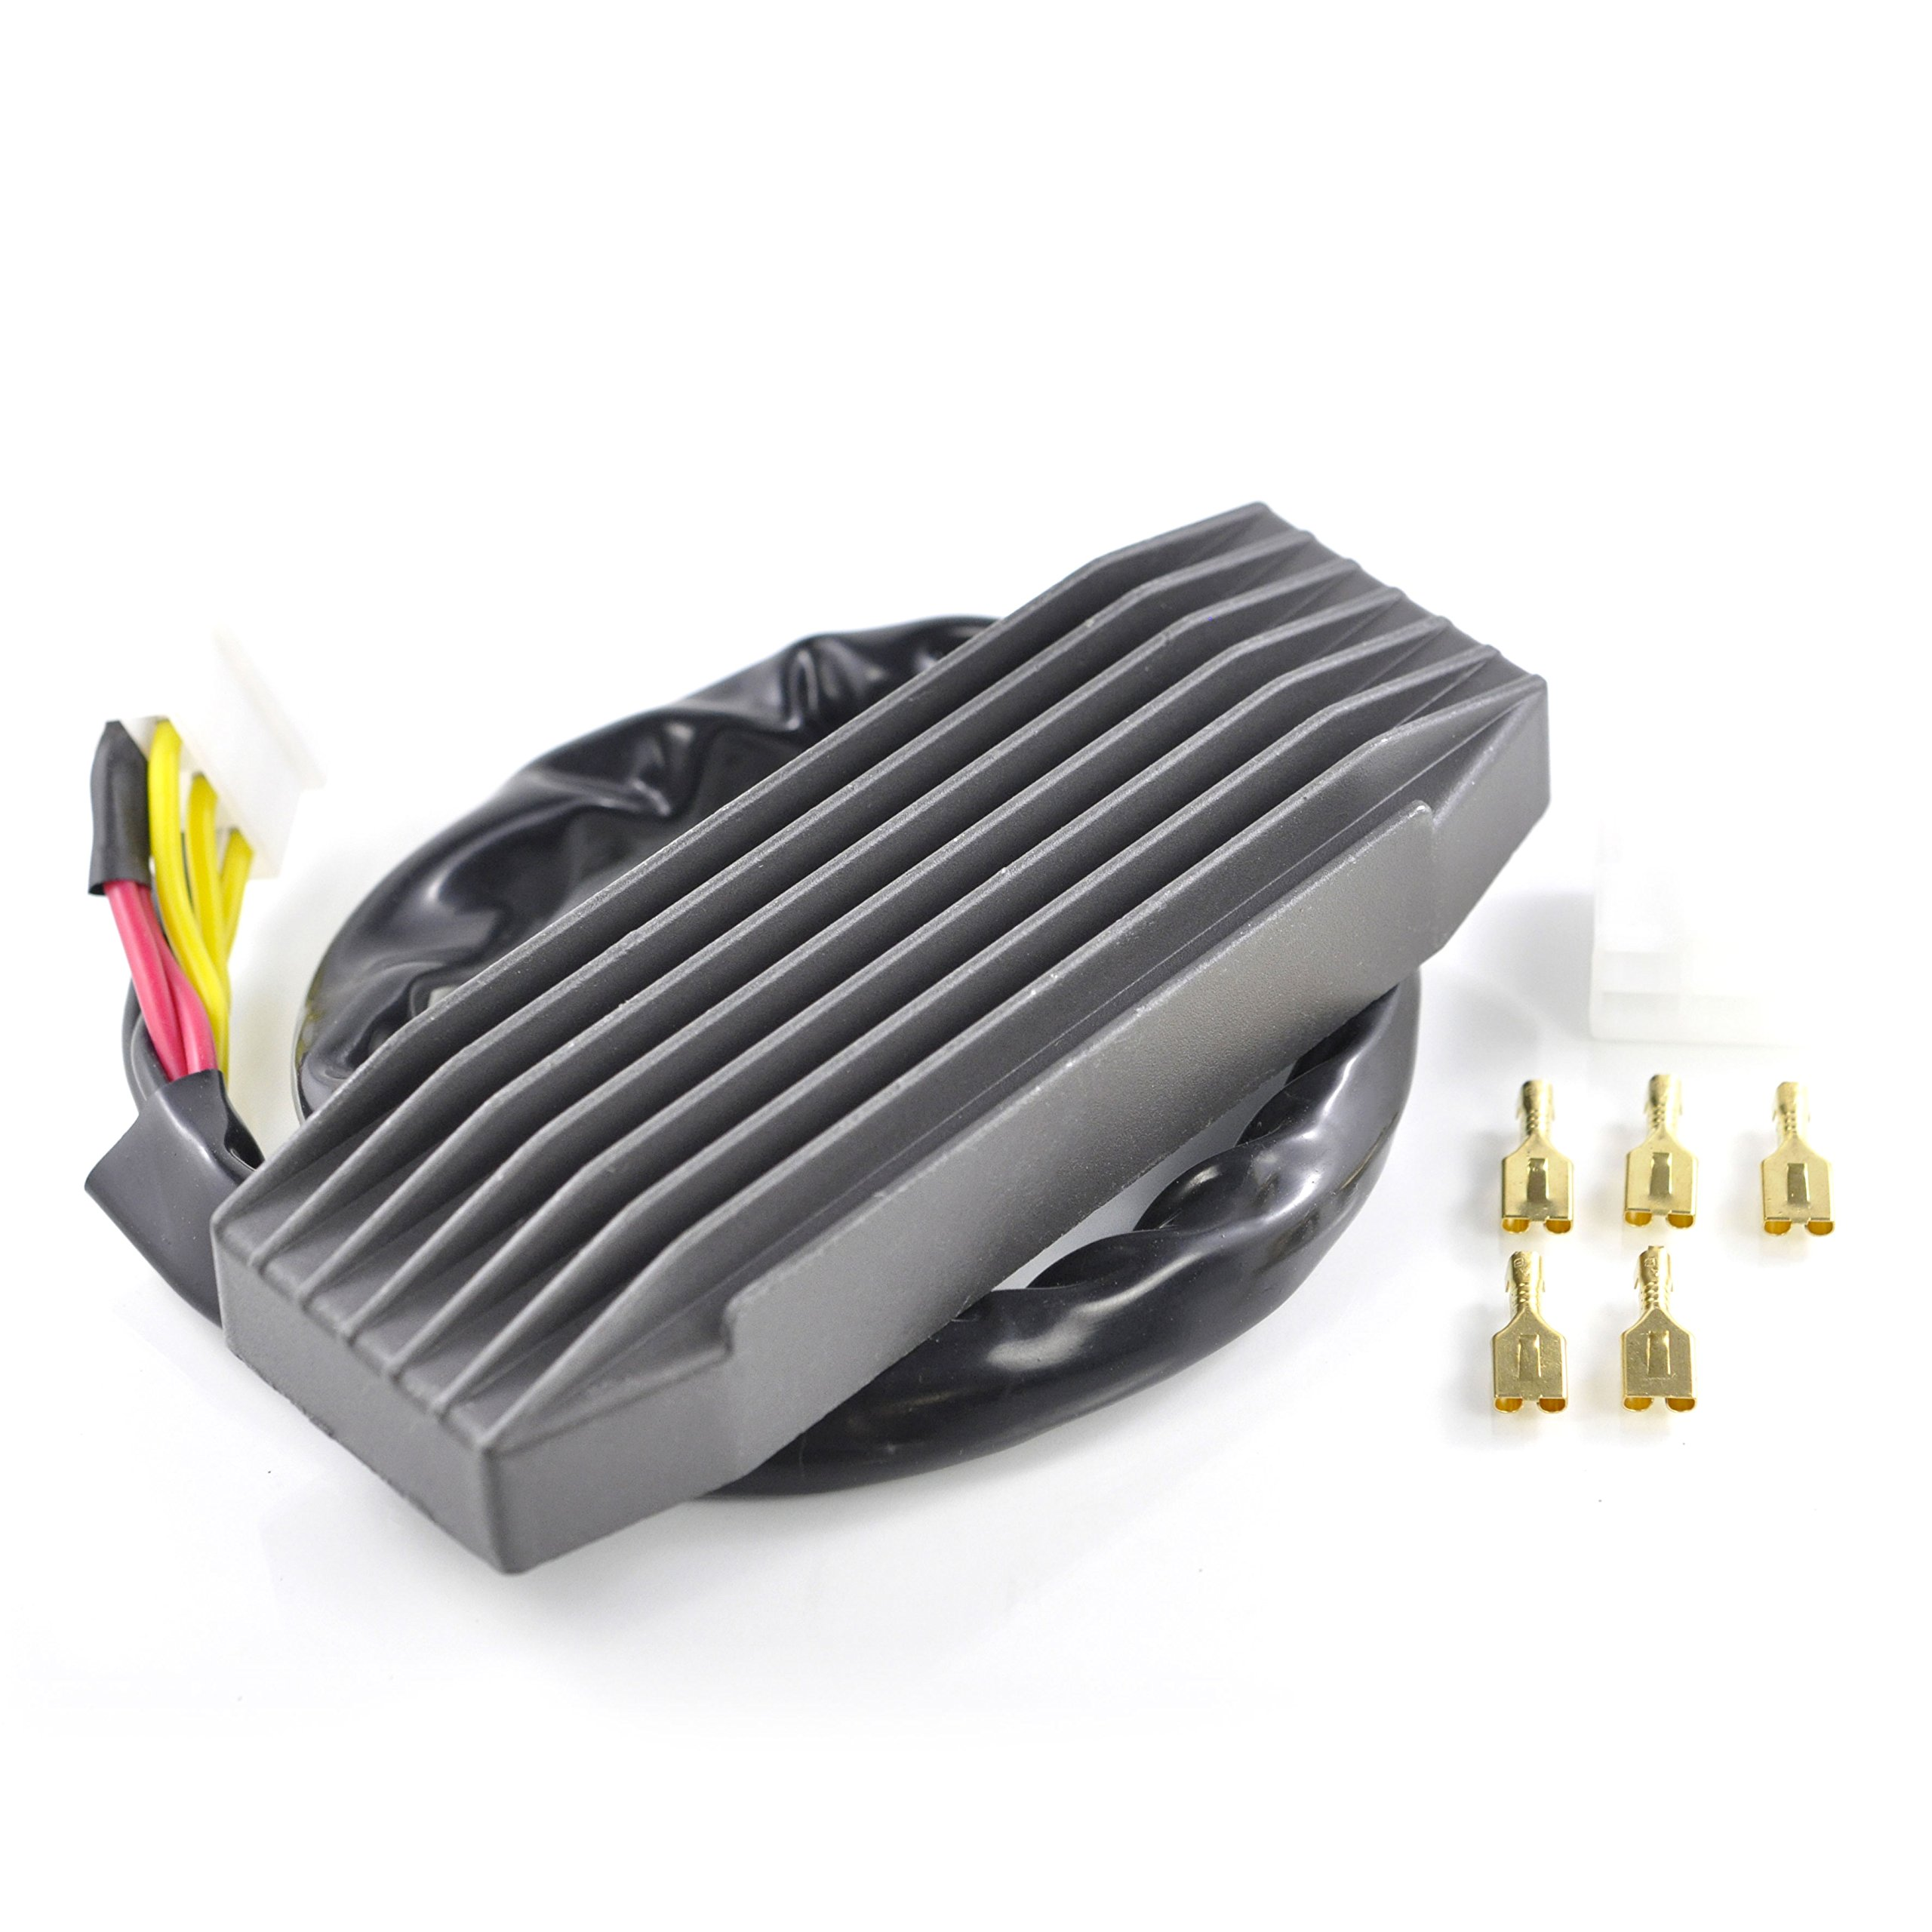 Voltage Regulator Rectifier For Suzuki Boulevard S50 VS800 / S83 VS1400 DR 650 S/SE Intruder VS1400 / VS800 1993-2009